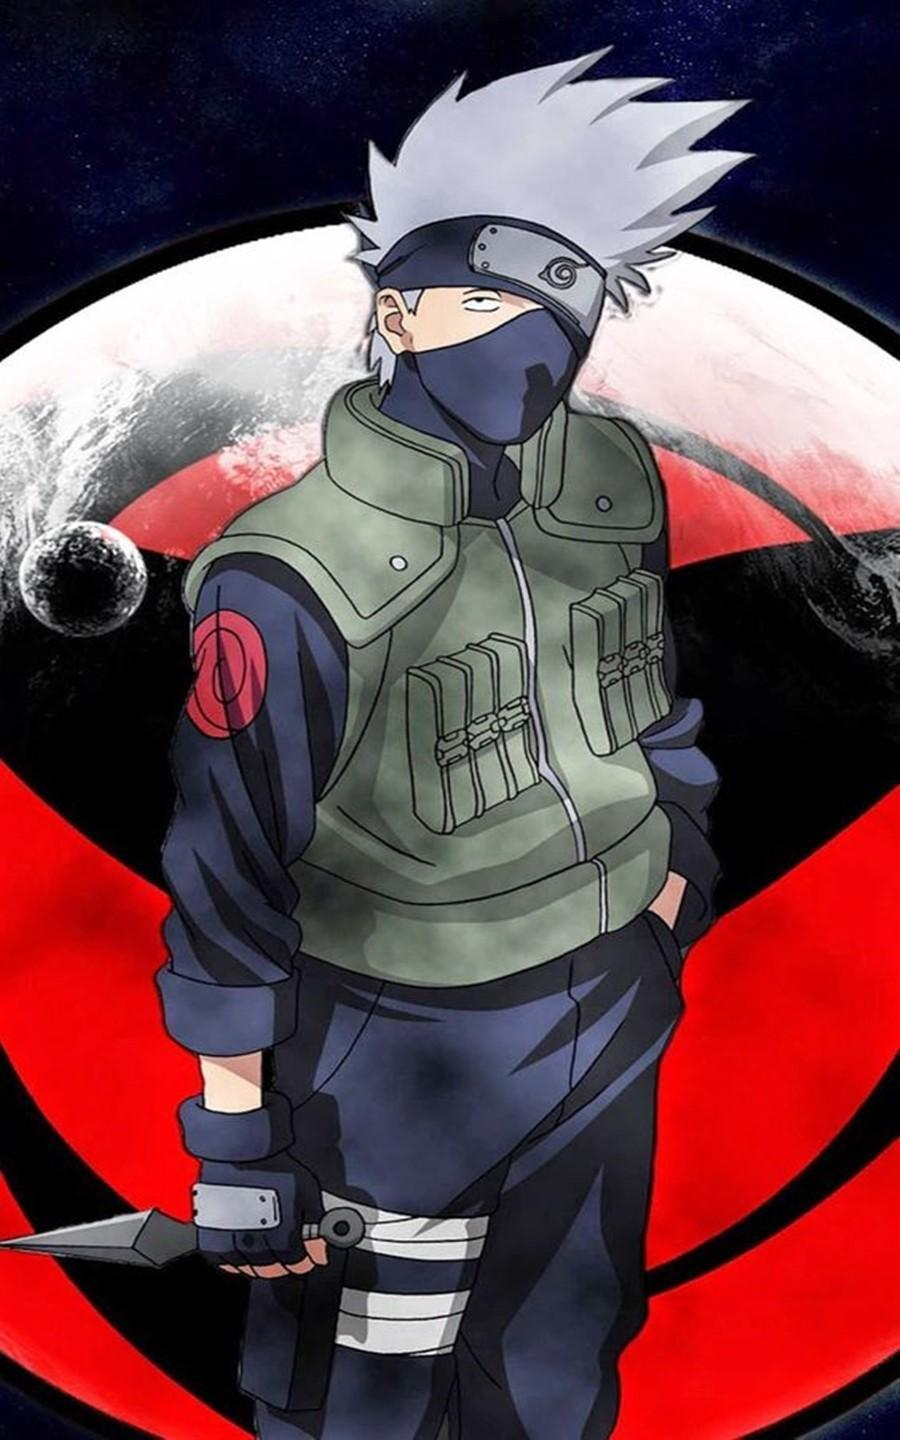 Best Kakashi Hatake Wallpaper Hd For Android Apk Download